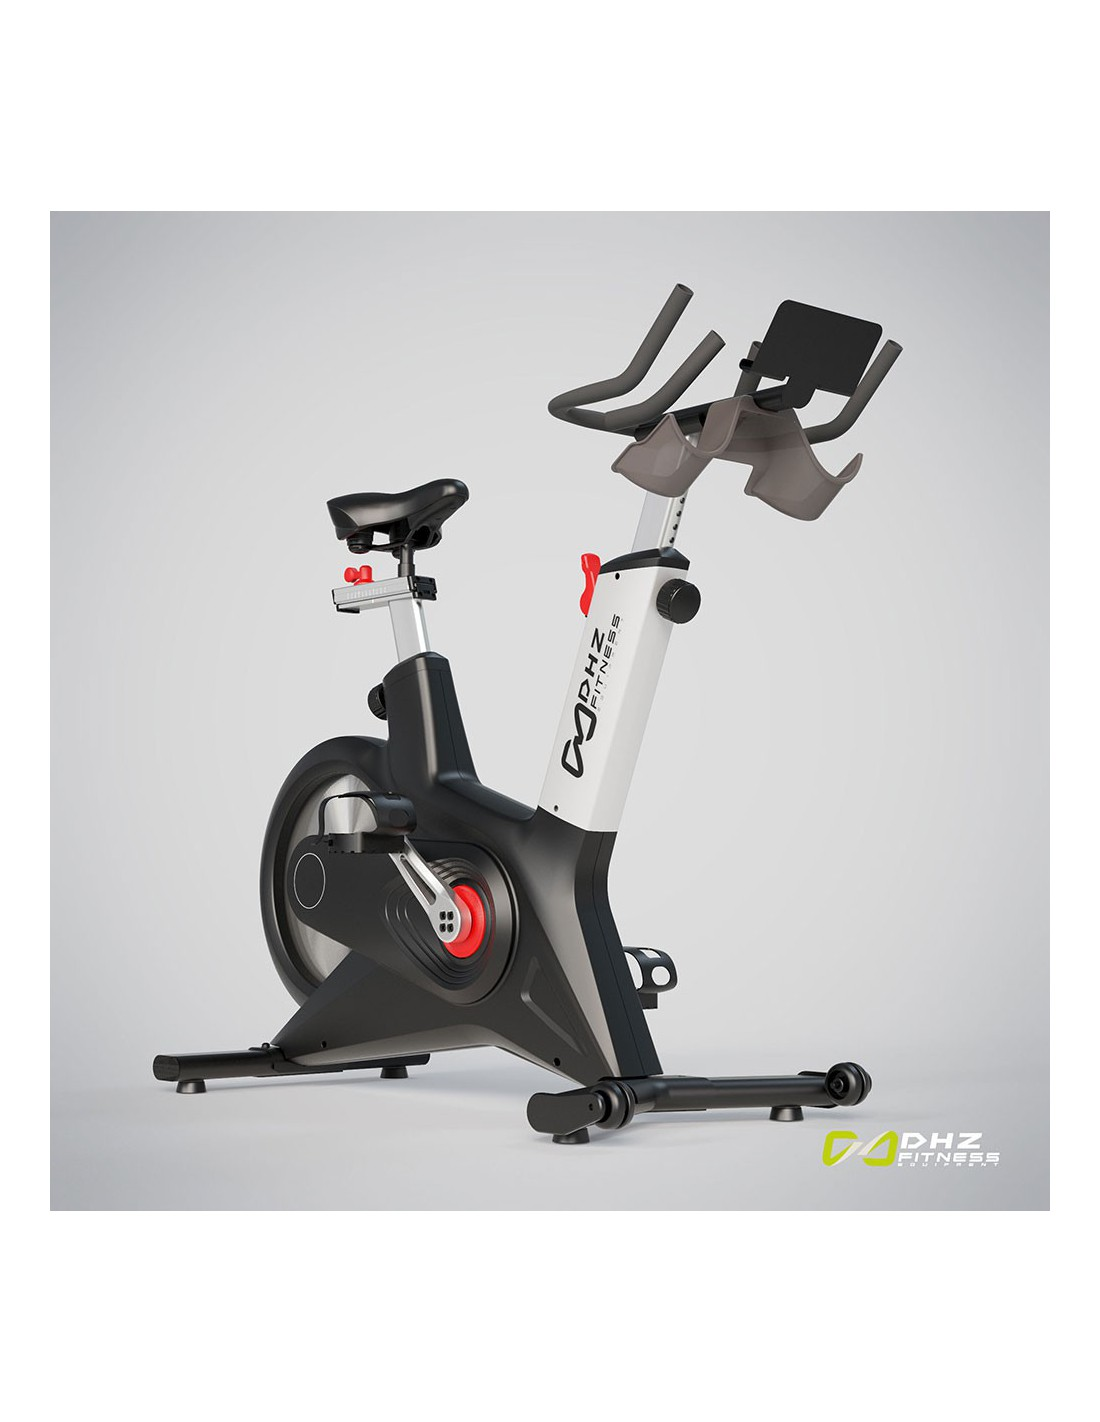 Bicicleta Spinning Profesional Magnética DHZ S300